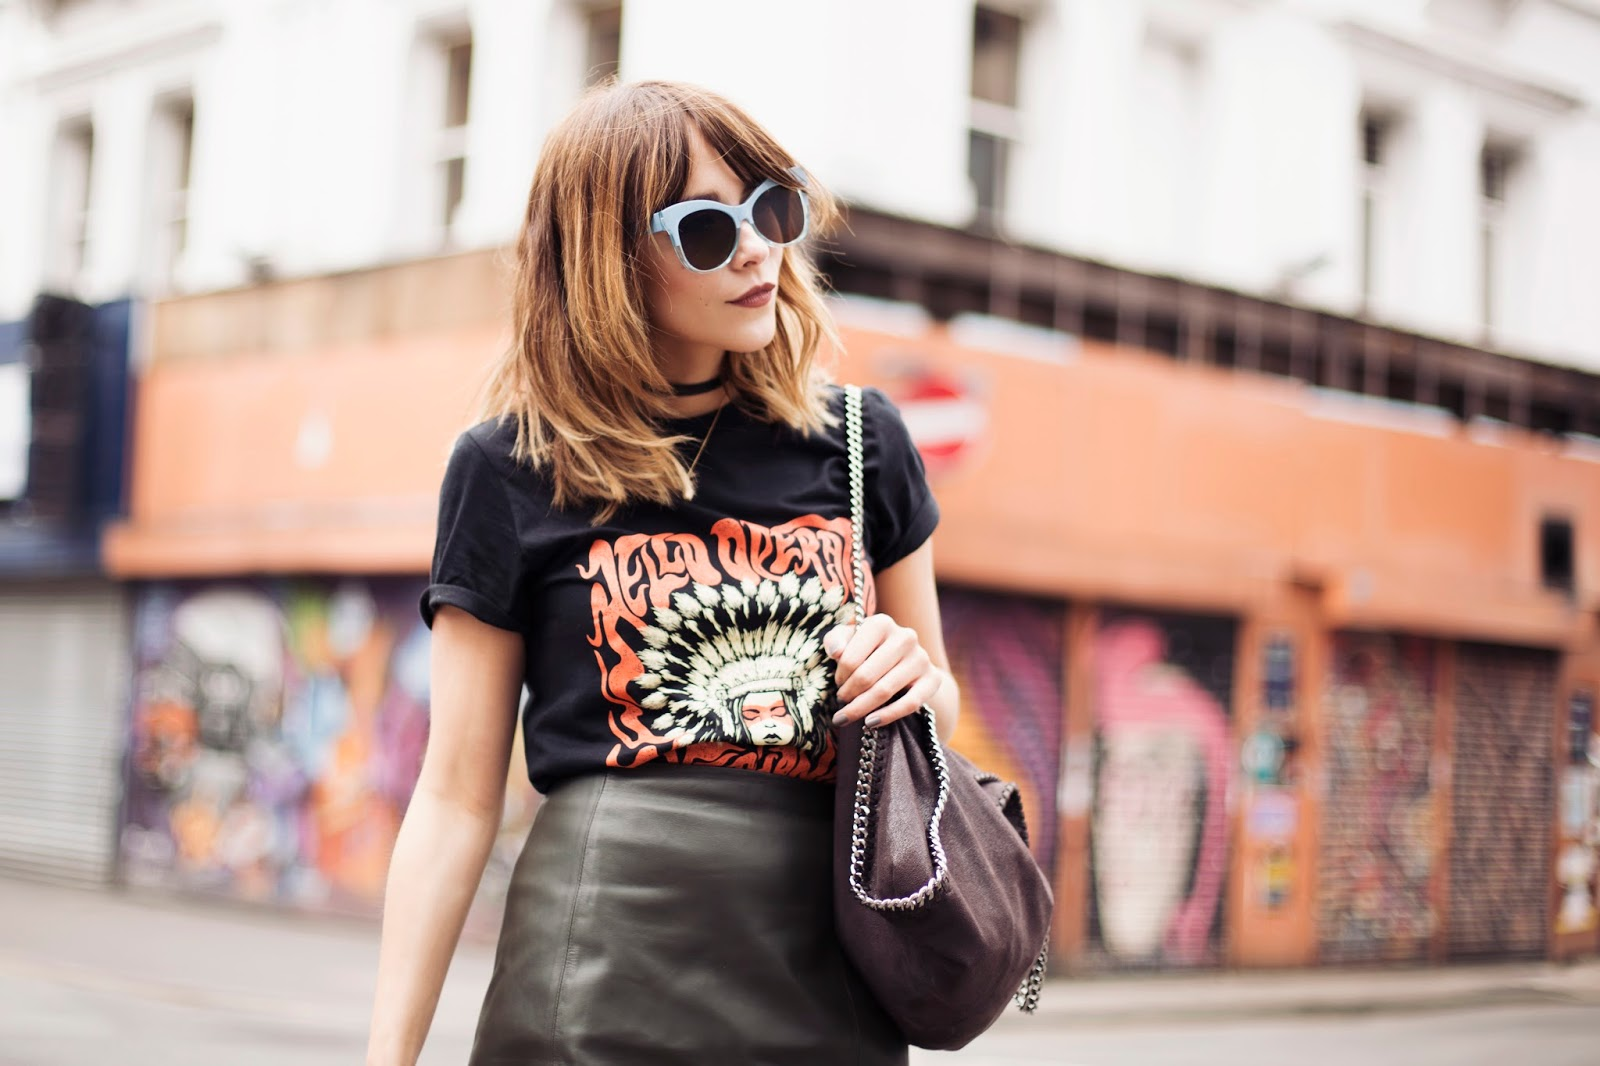 Megan Ellaby loves Hello Operator Band. Wearing band tee with leather skirt